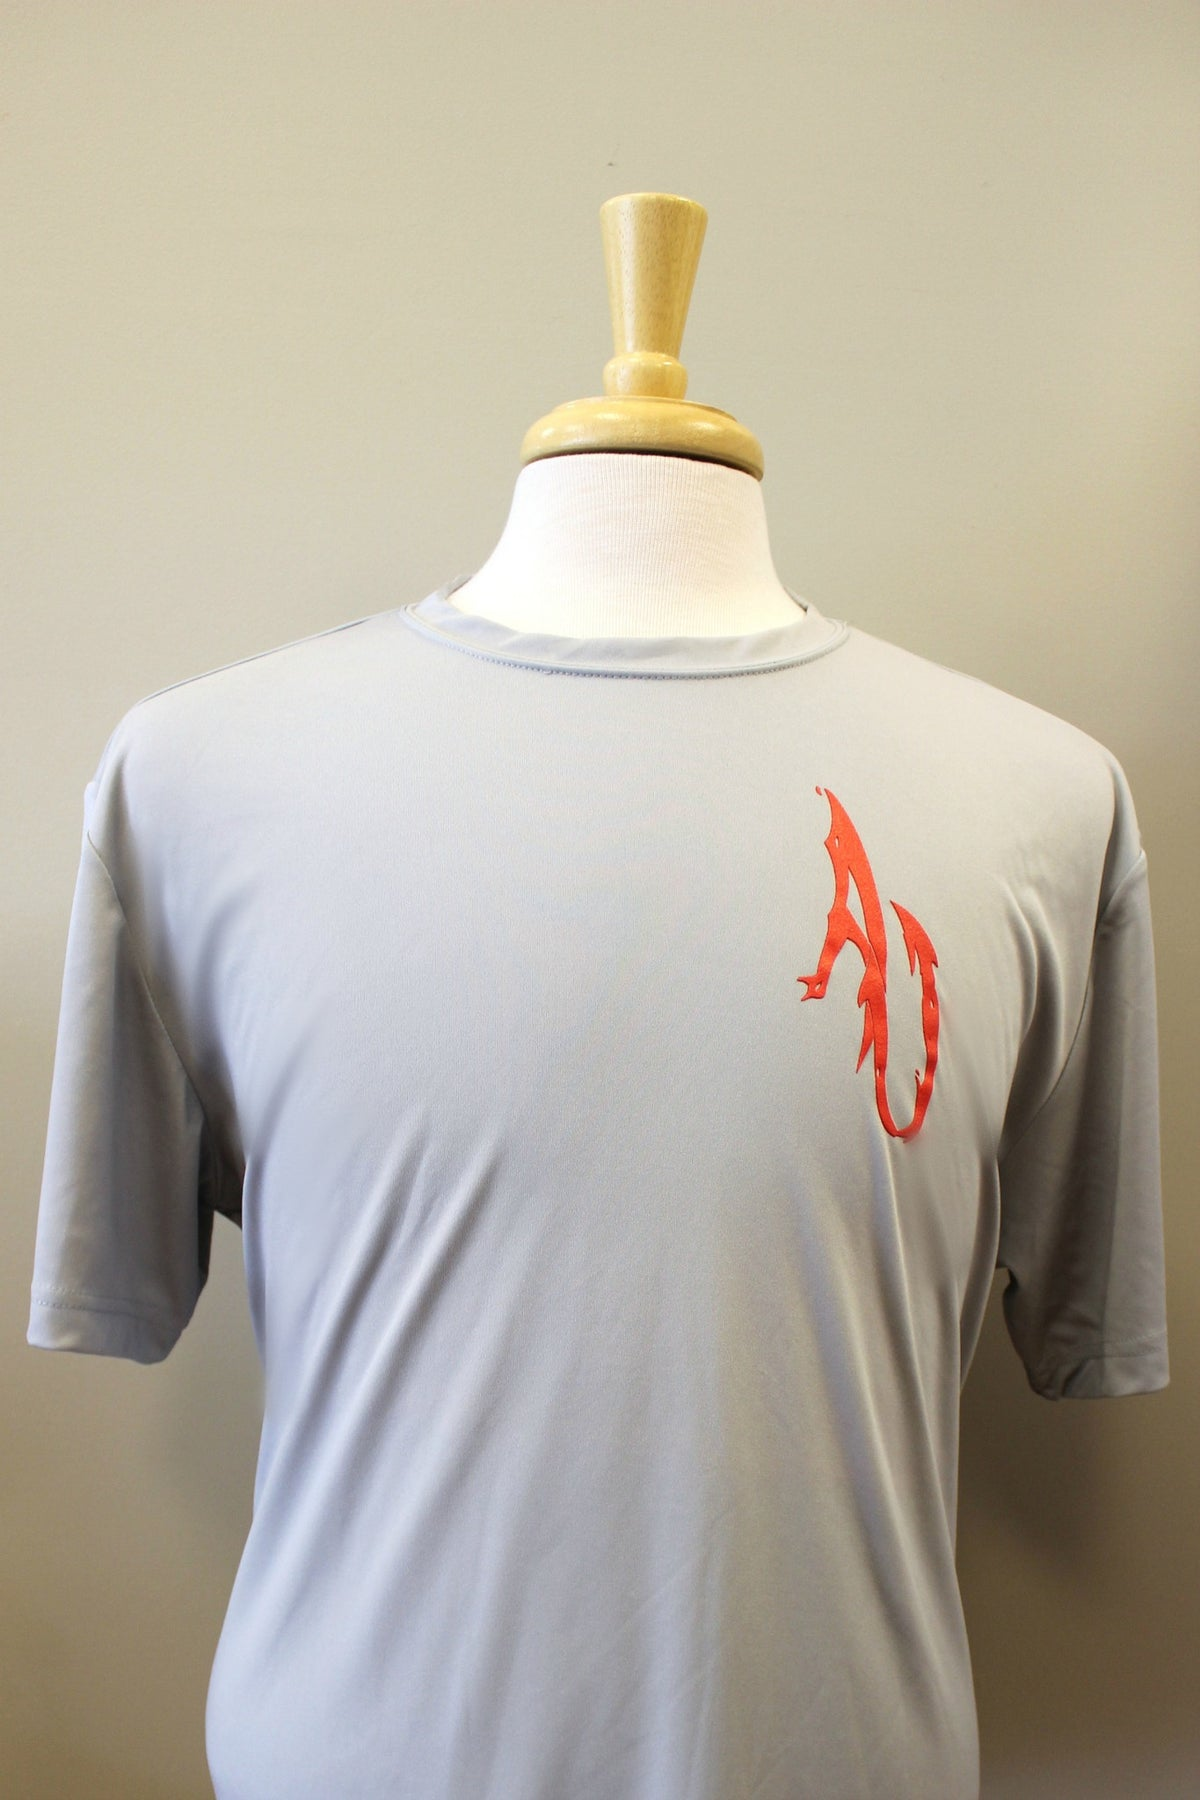 Angler Up: Short Sleeve Performance Tee, Gray/Red